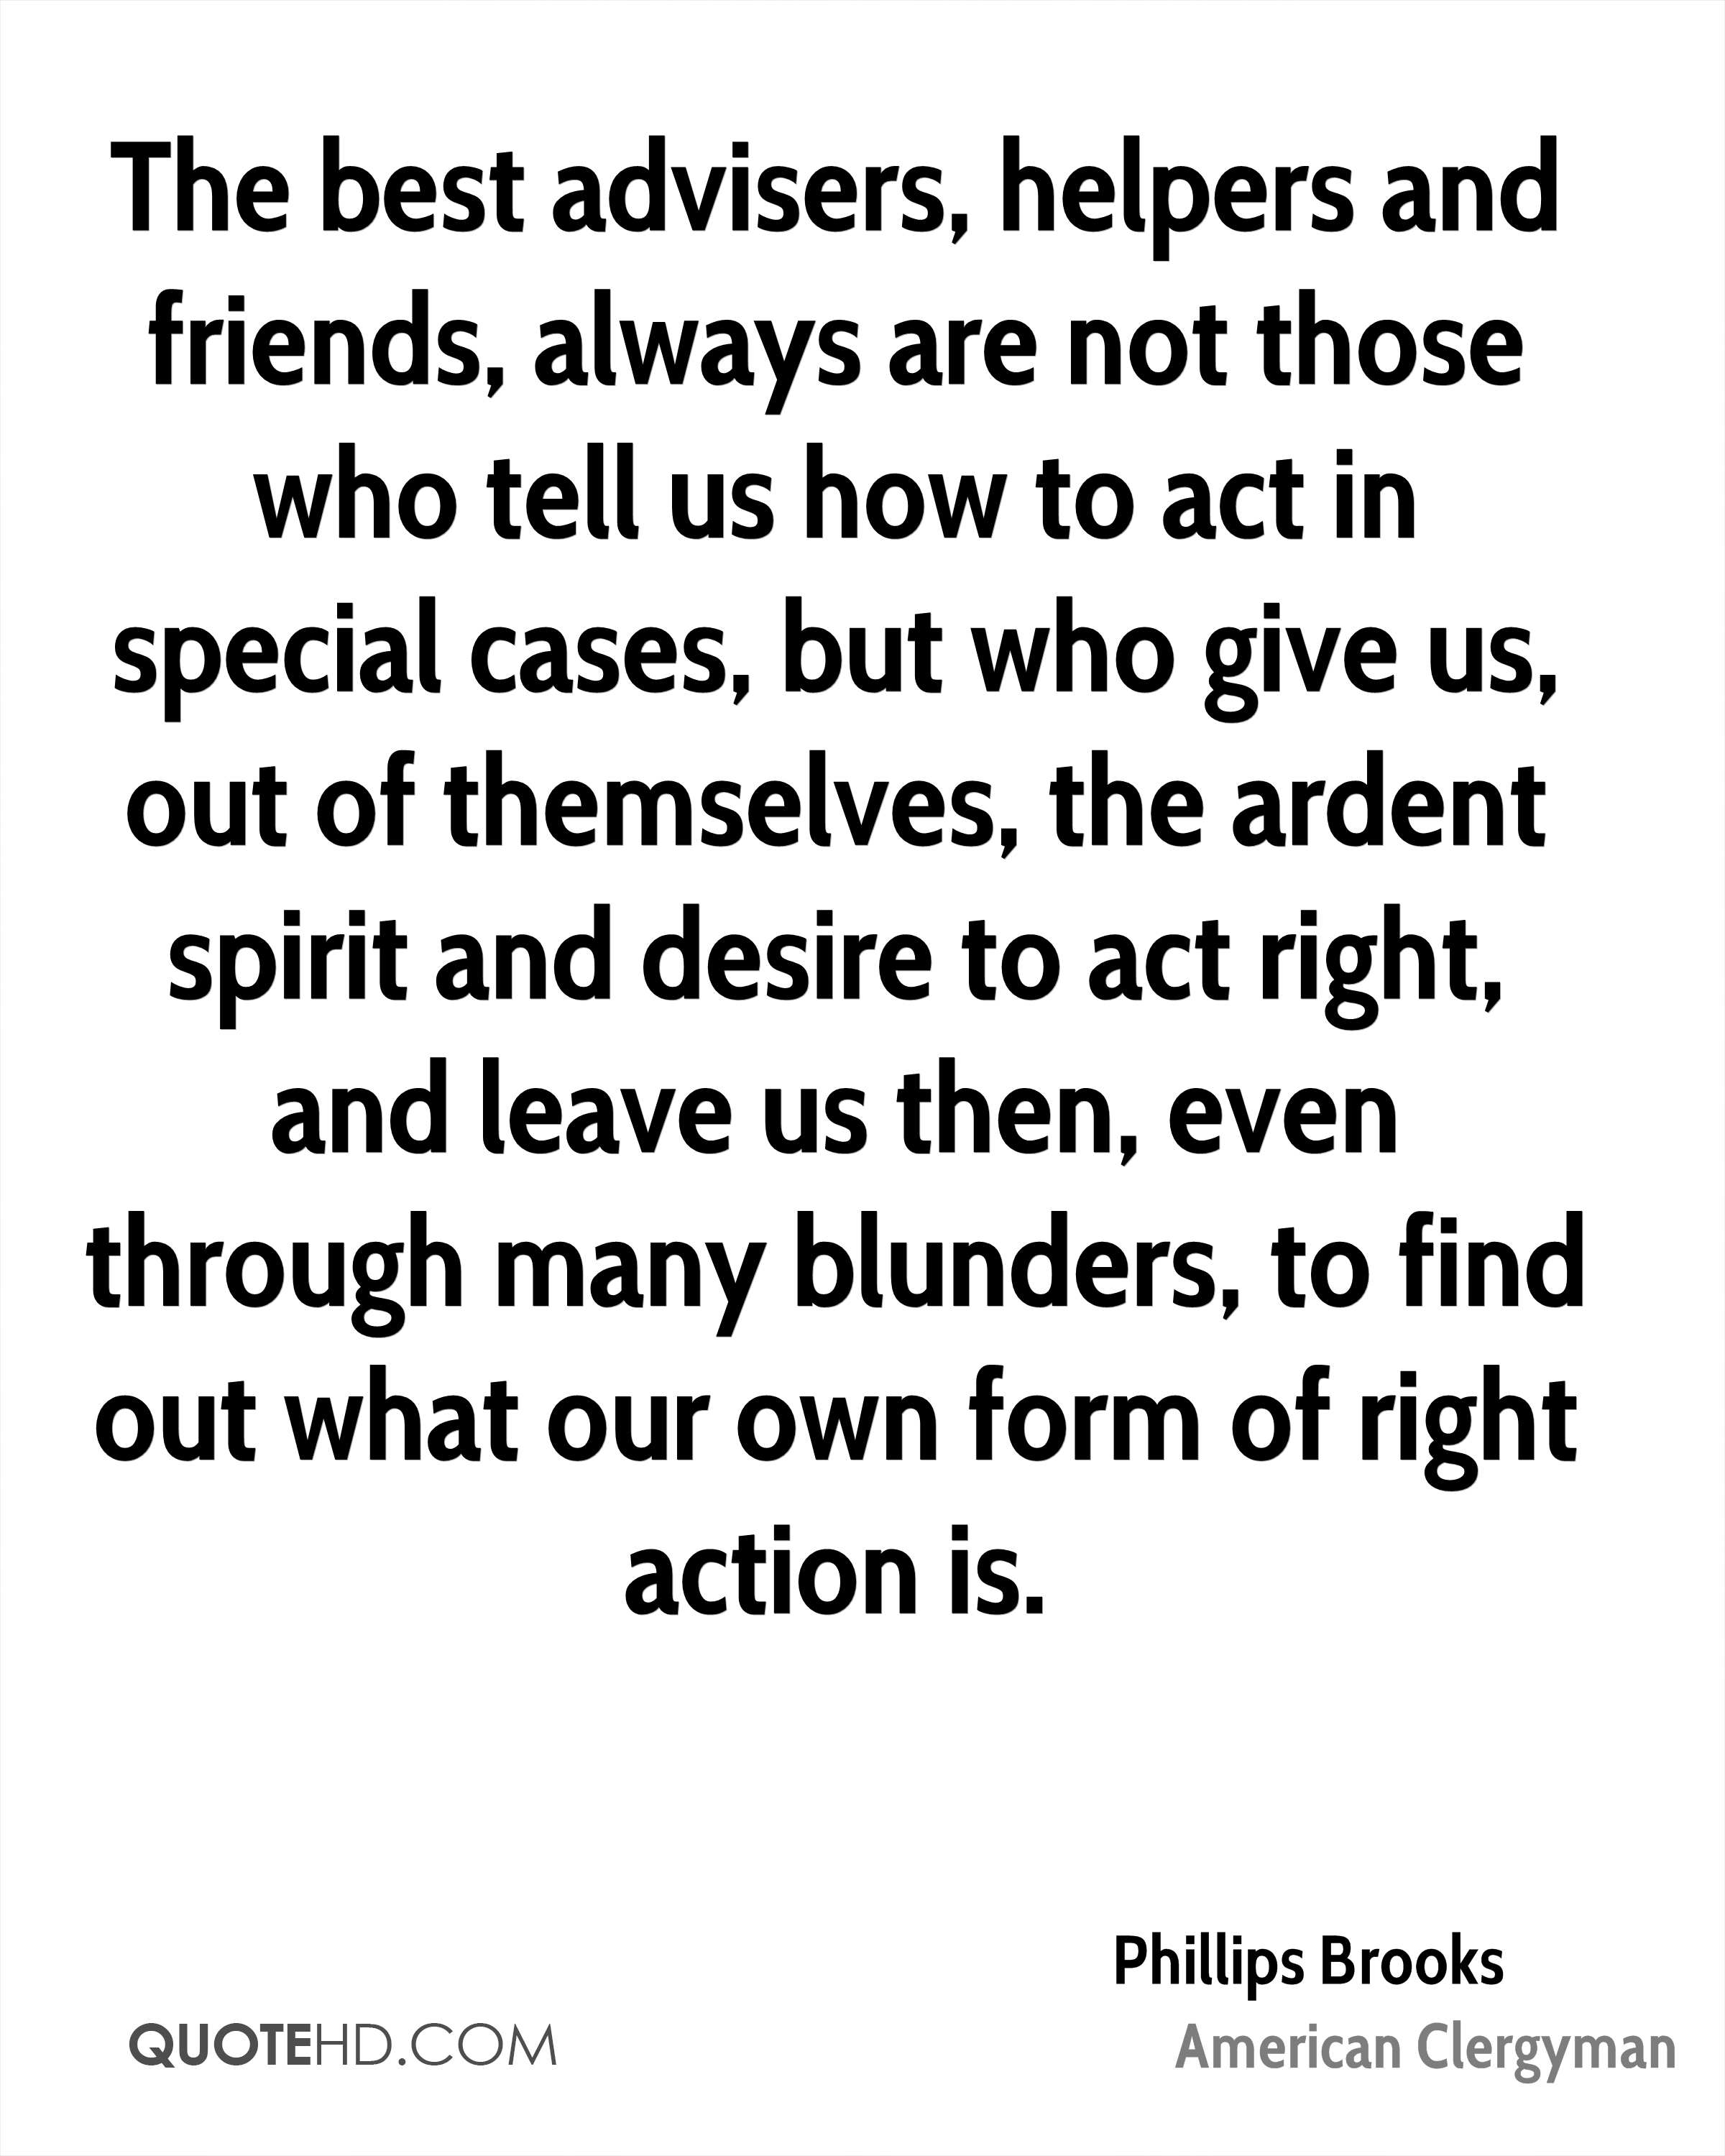 The best advisers, helpers and friends, always are not those who tell us how to act in special cases, but who give us, out of themselves, the ardent spirit and desire to act right, and leave us then, even through many blunders, to find out what our own form of right action is.